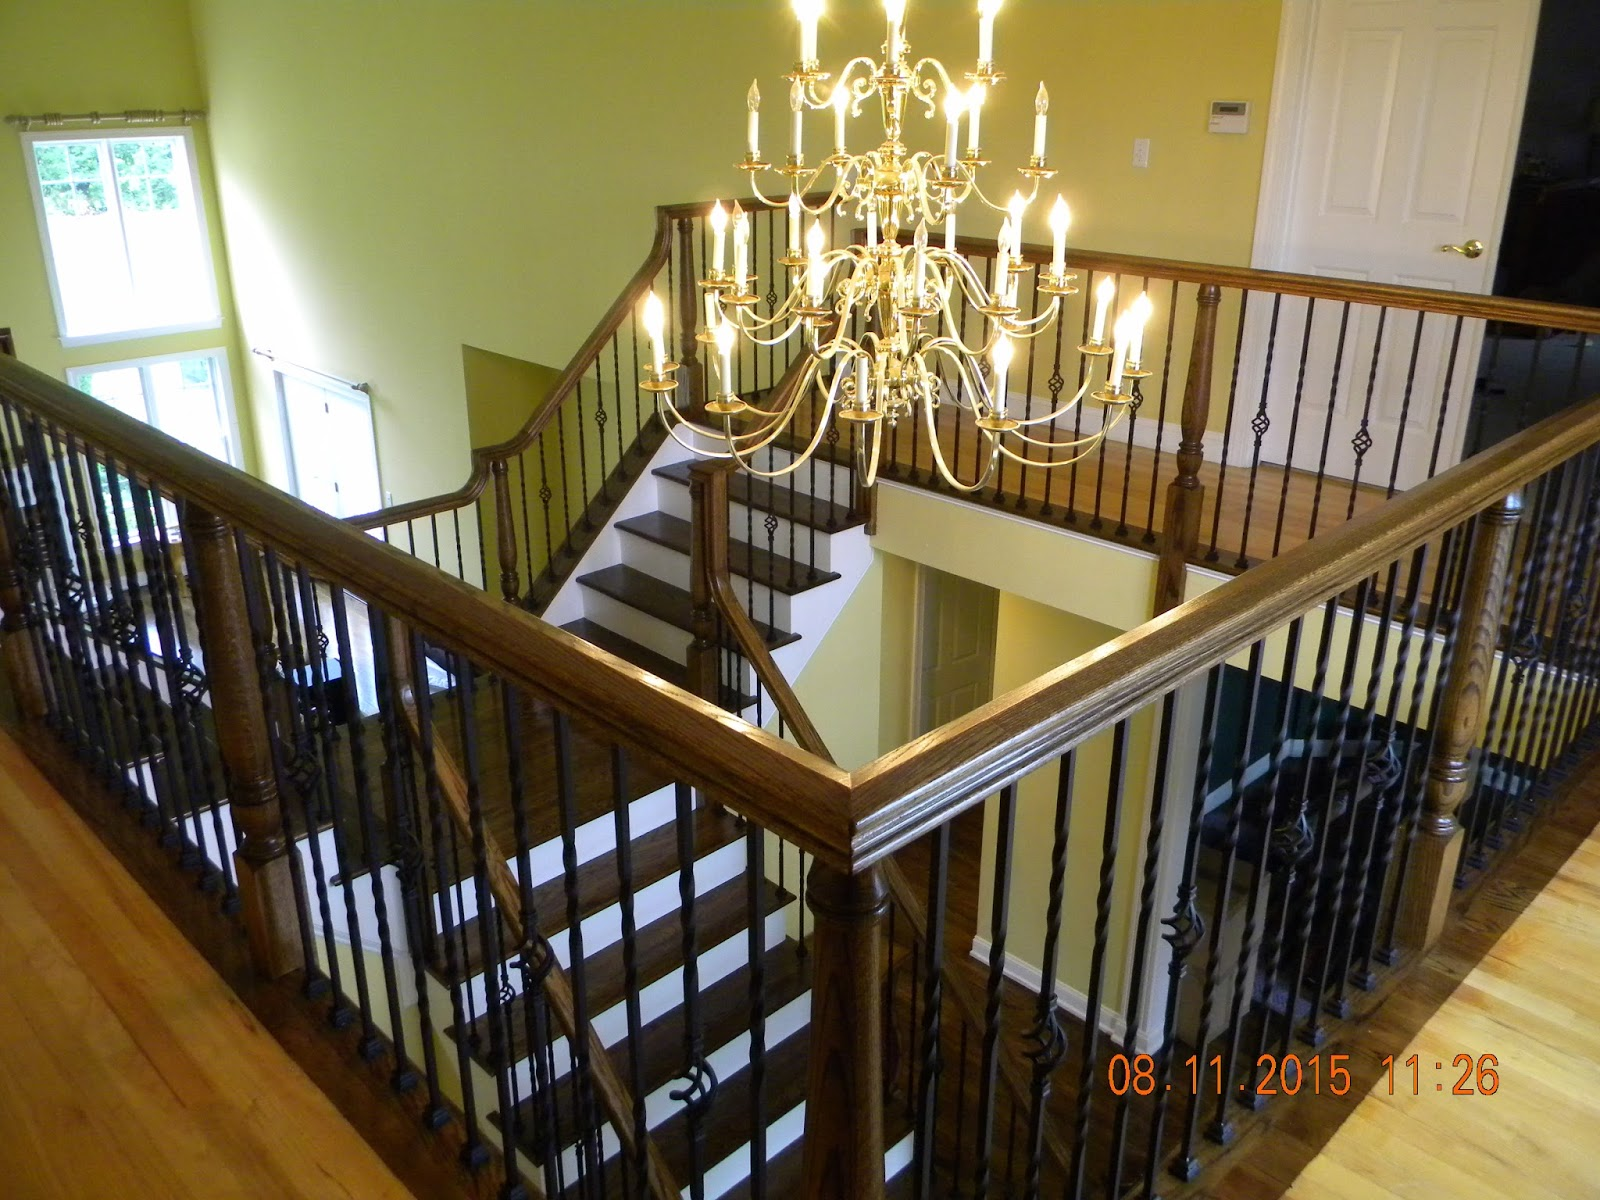 Wood Stairs and Rails and Iron Balusters: Install Iron